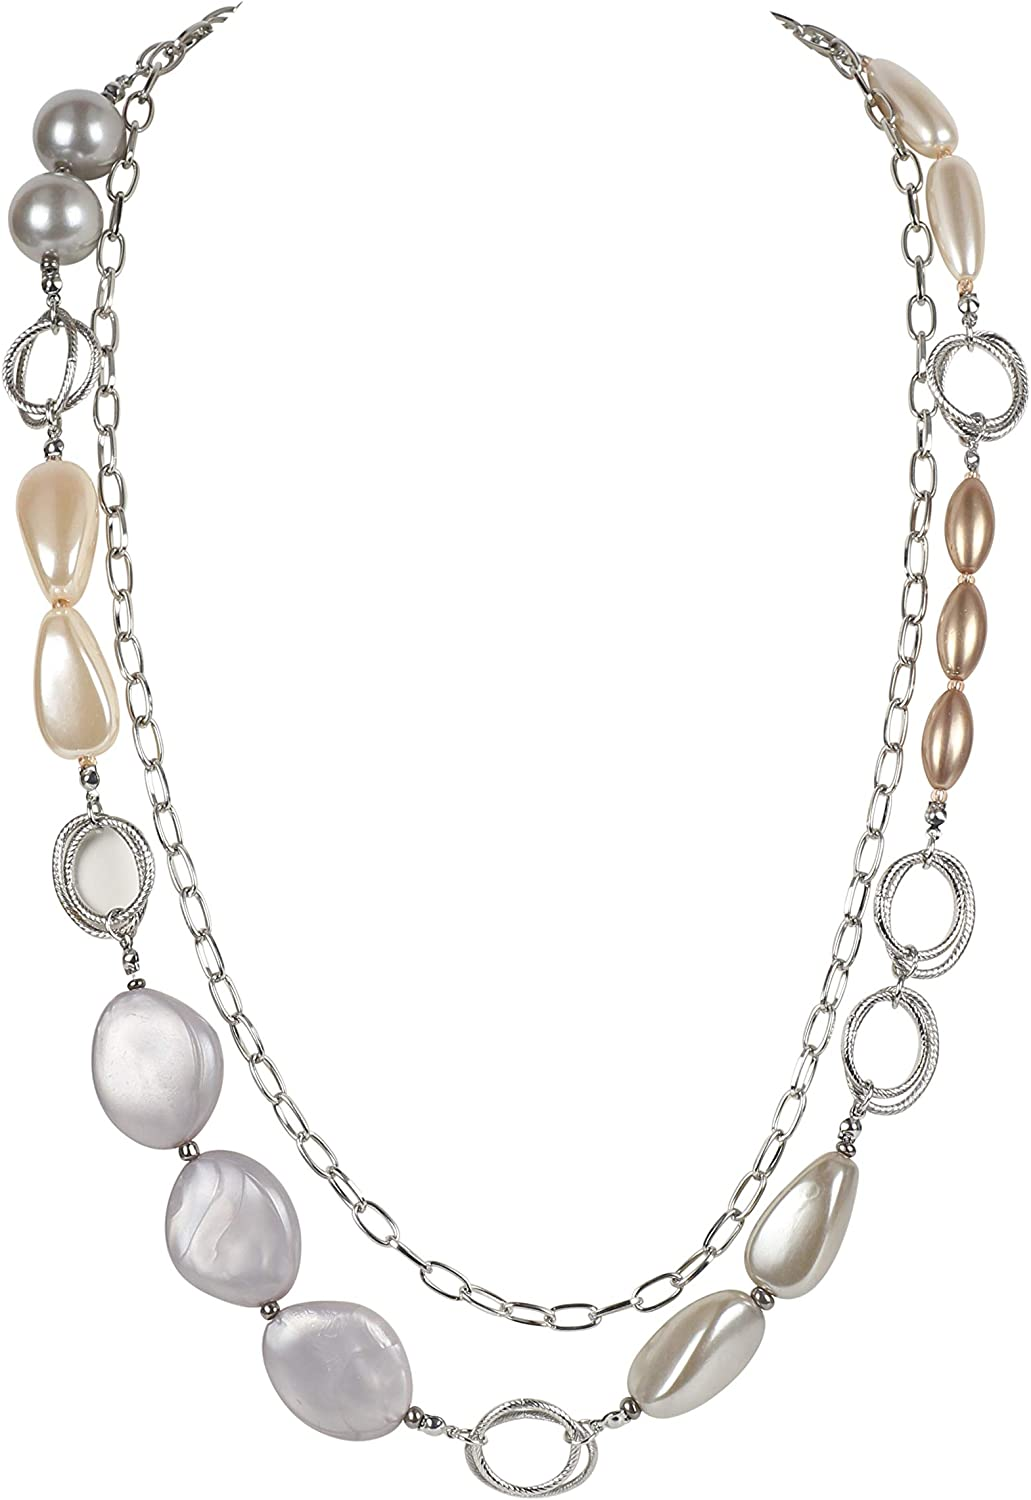 BOCAR 2 Layer Long Fashion Necklace Strand Chain Statement Beaded Women 29